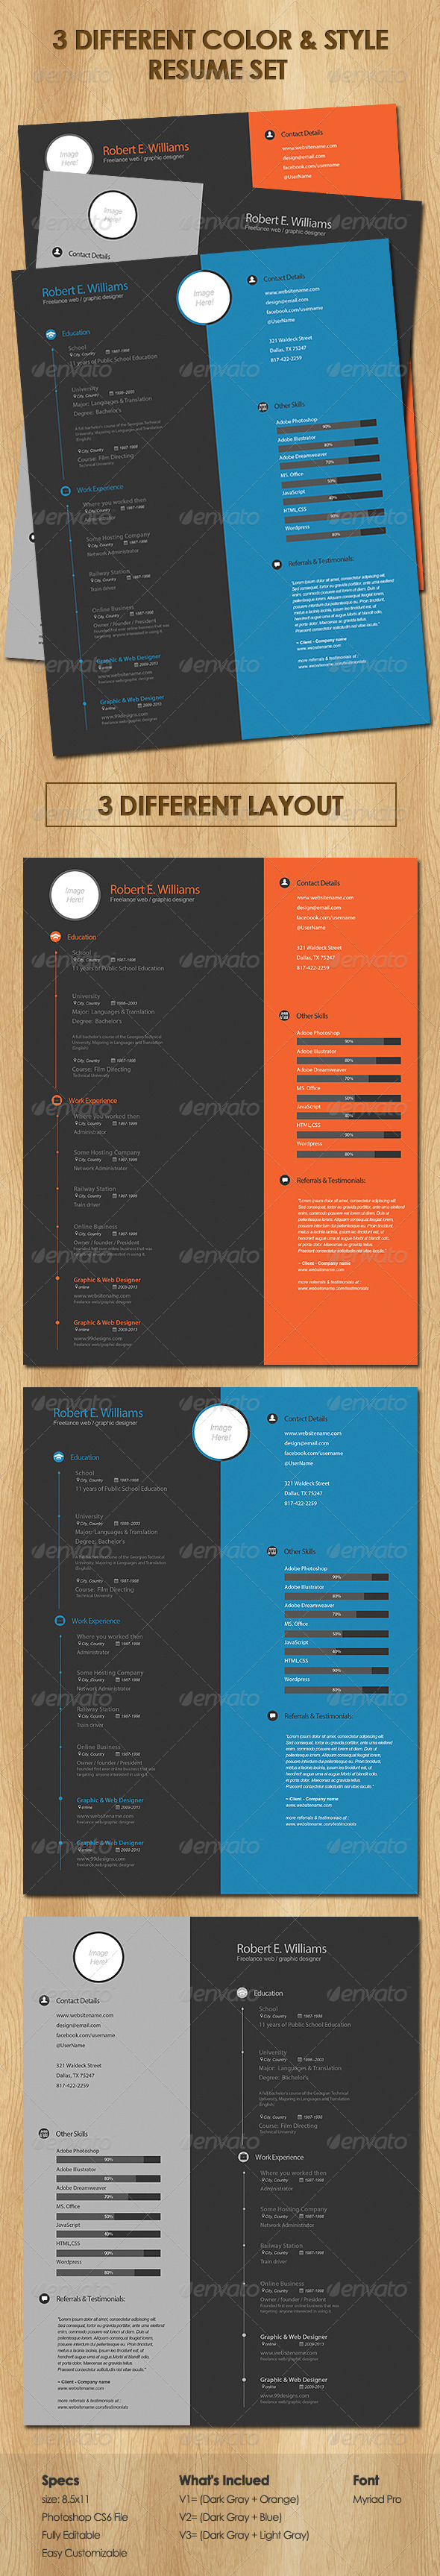 GraphicRiver 3 Different Color & Style Resume Set 6477680